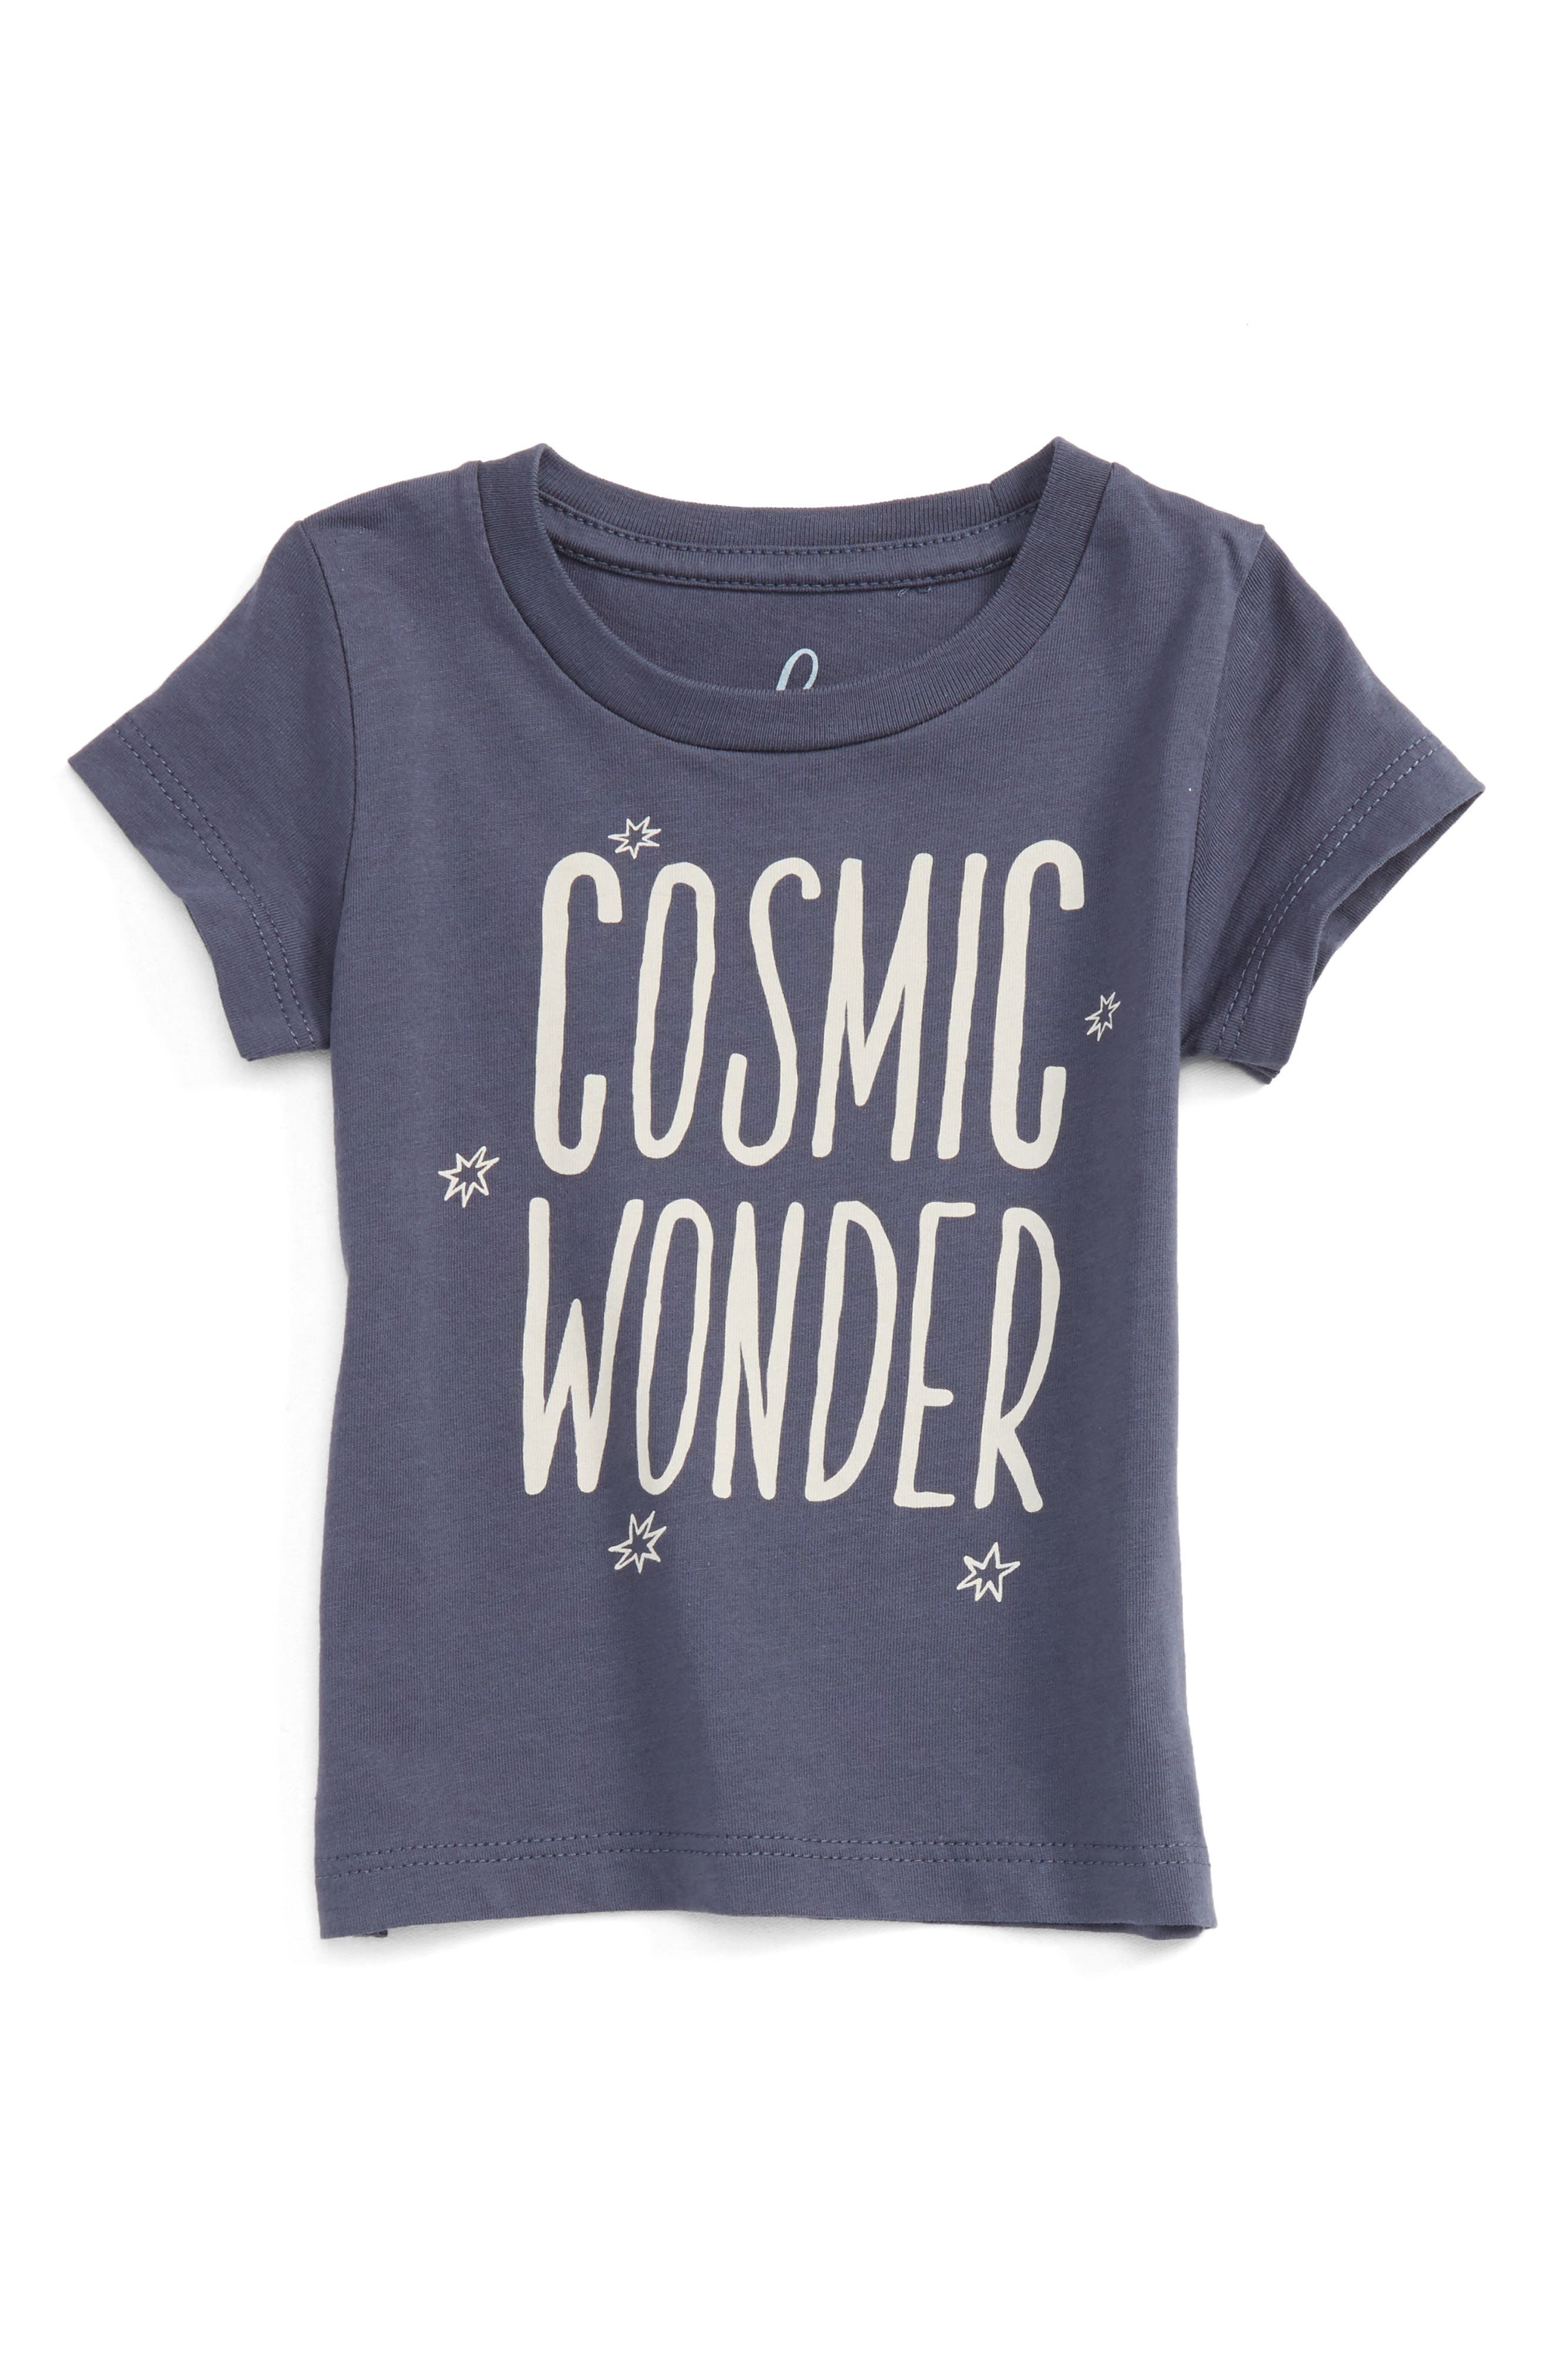 Main Image - Peek Cosmic Wonder Graphic T-Shirt (Baby Boys)